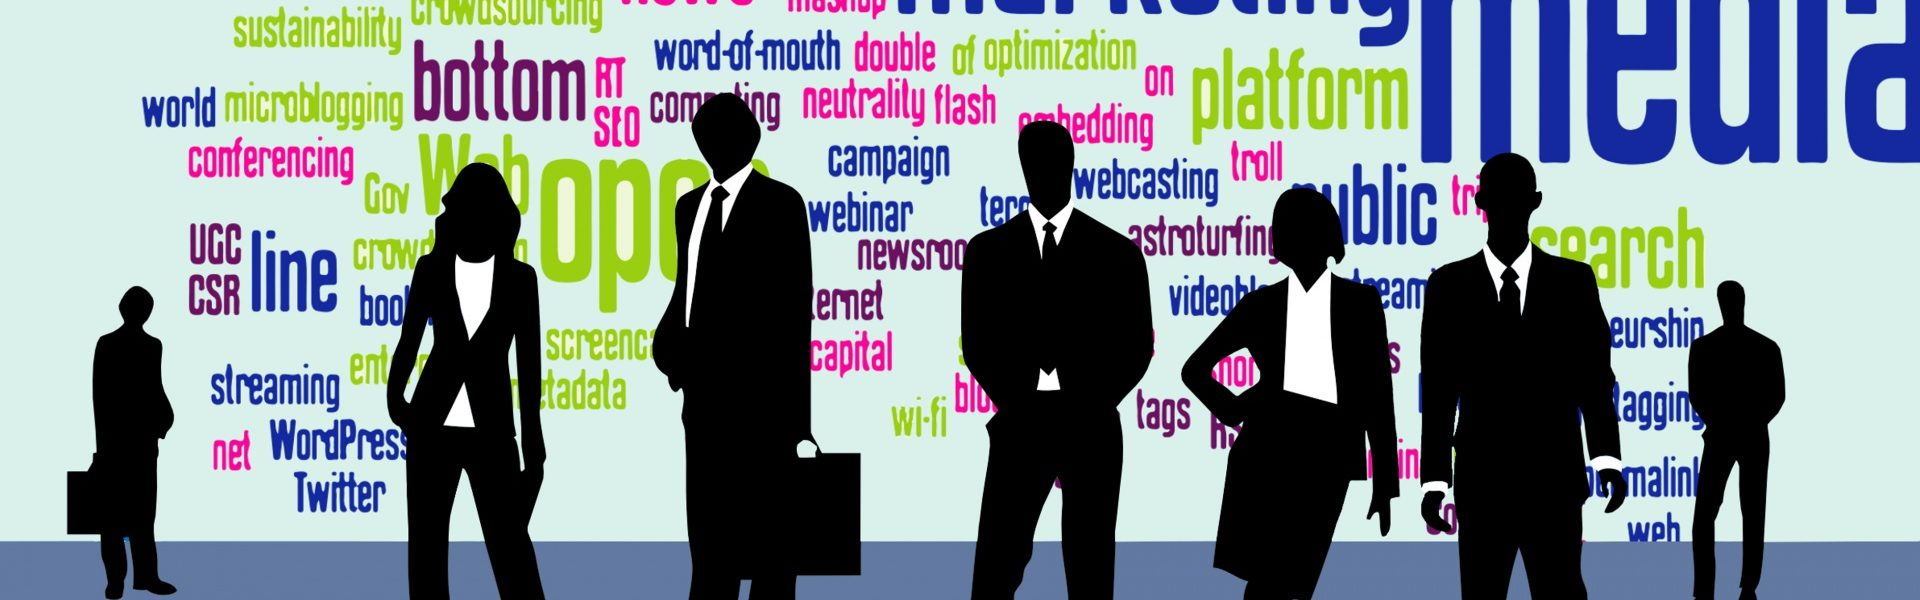 Job Fair Graphic showing job words and people